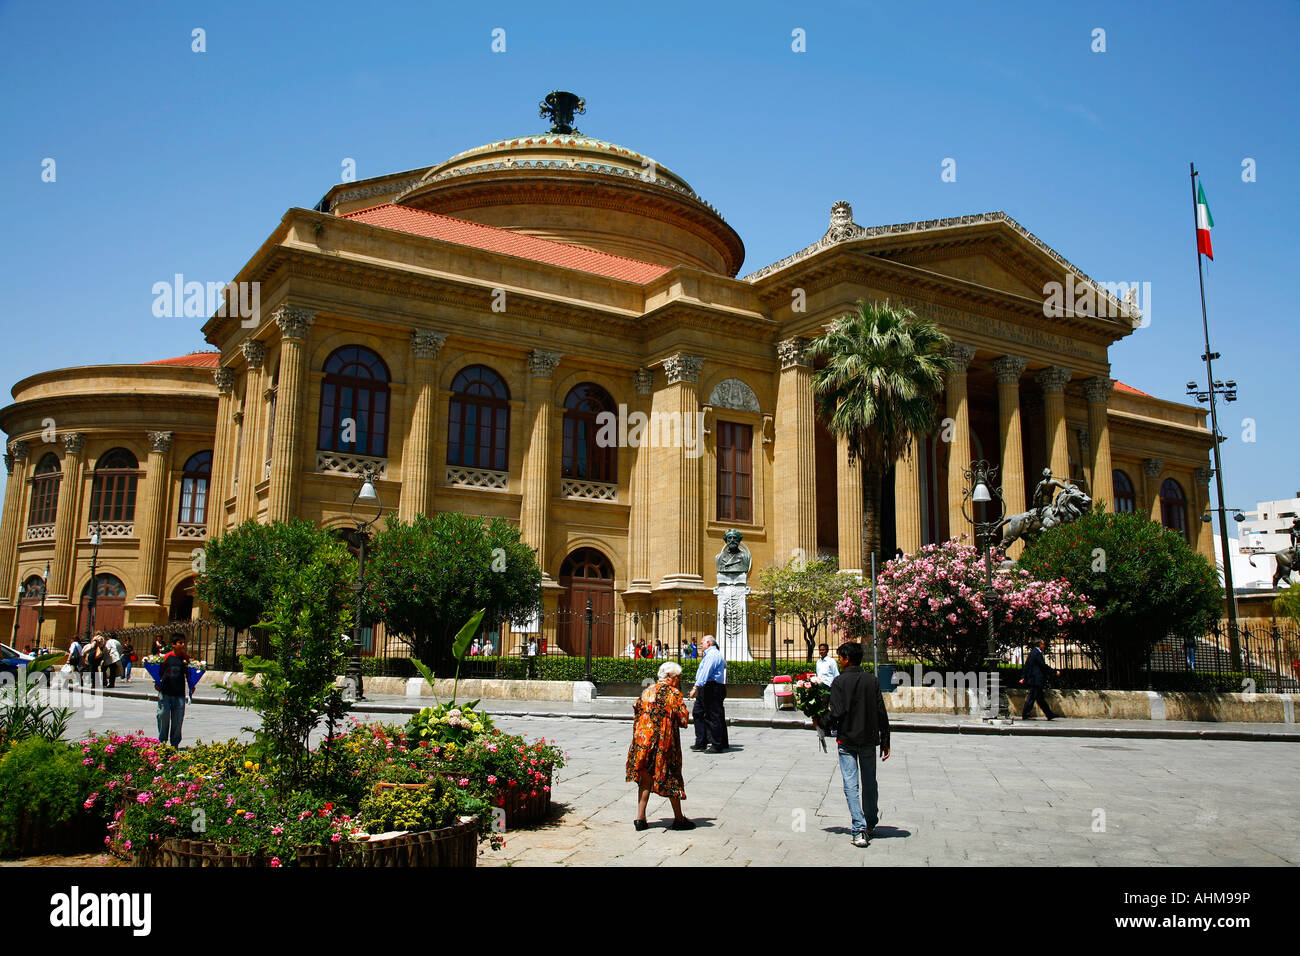 Teatro Massimo Opera House Palermo Sicily Stock Photo ...